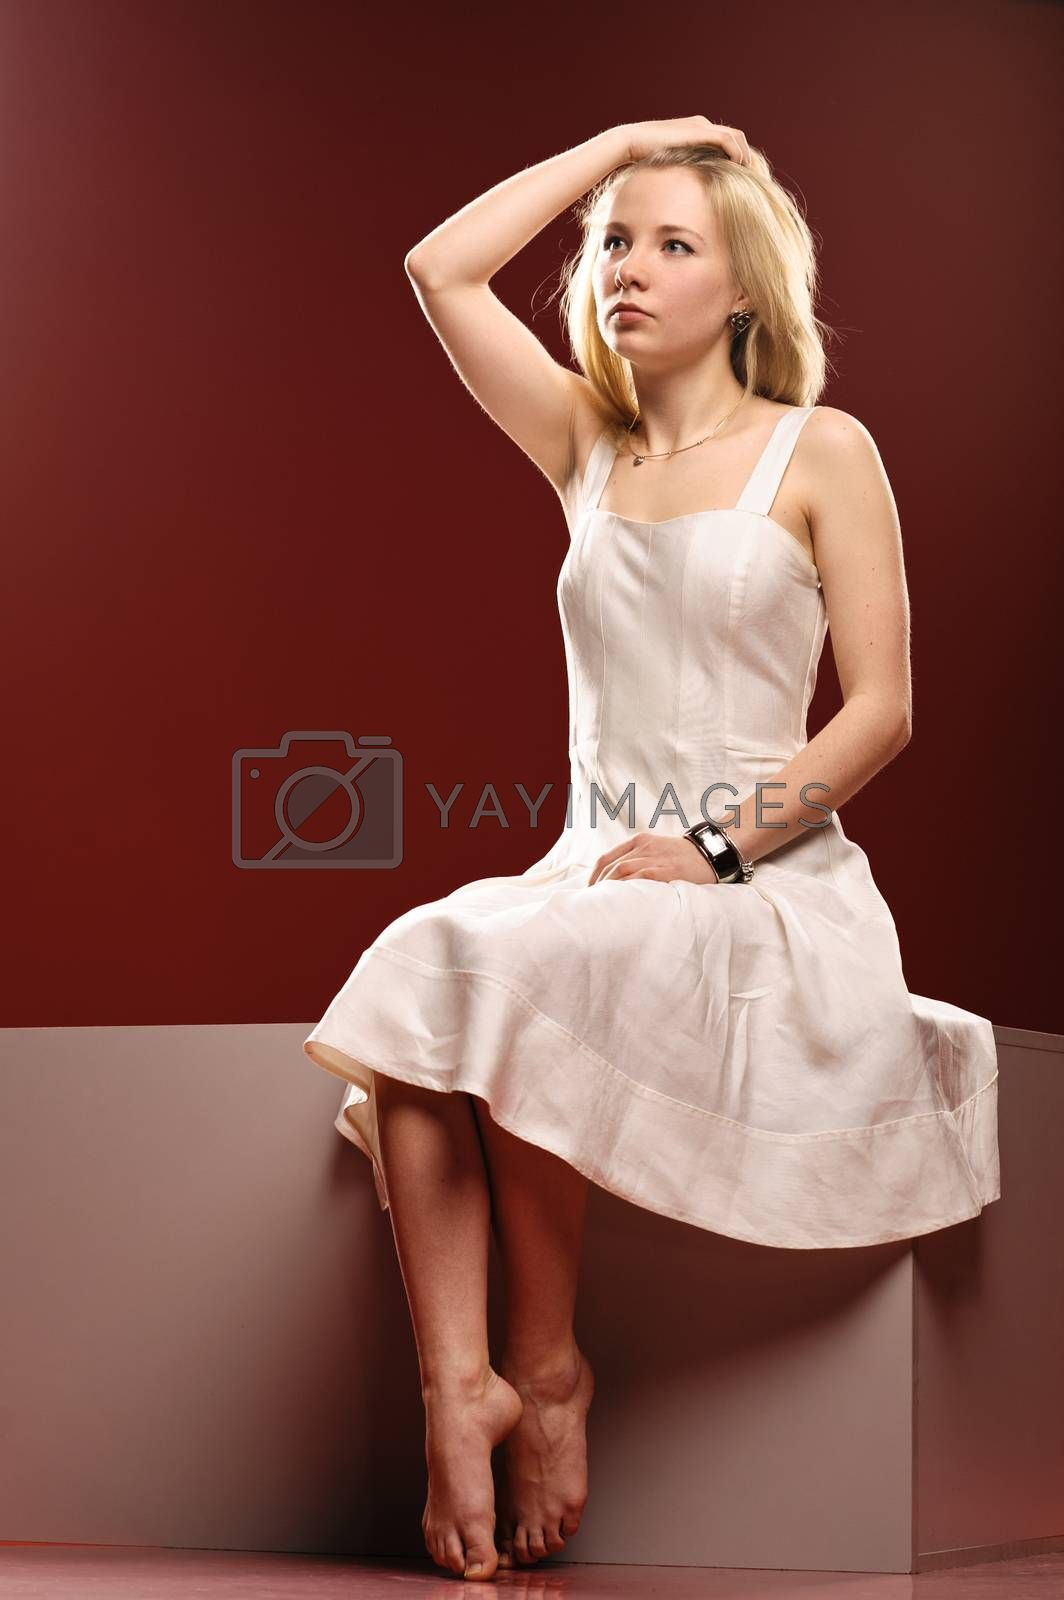 Barefoot girl sitting on a cube isolated on red background